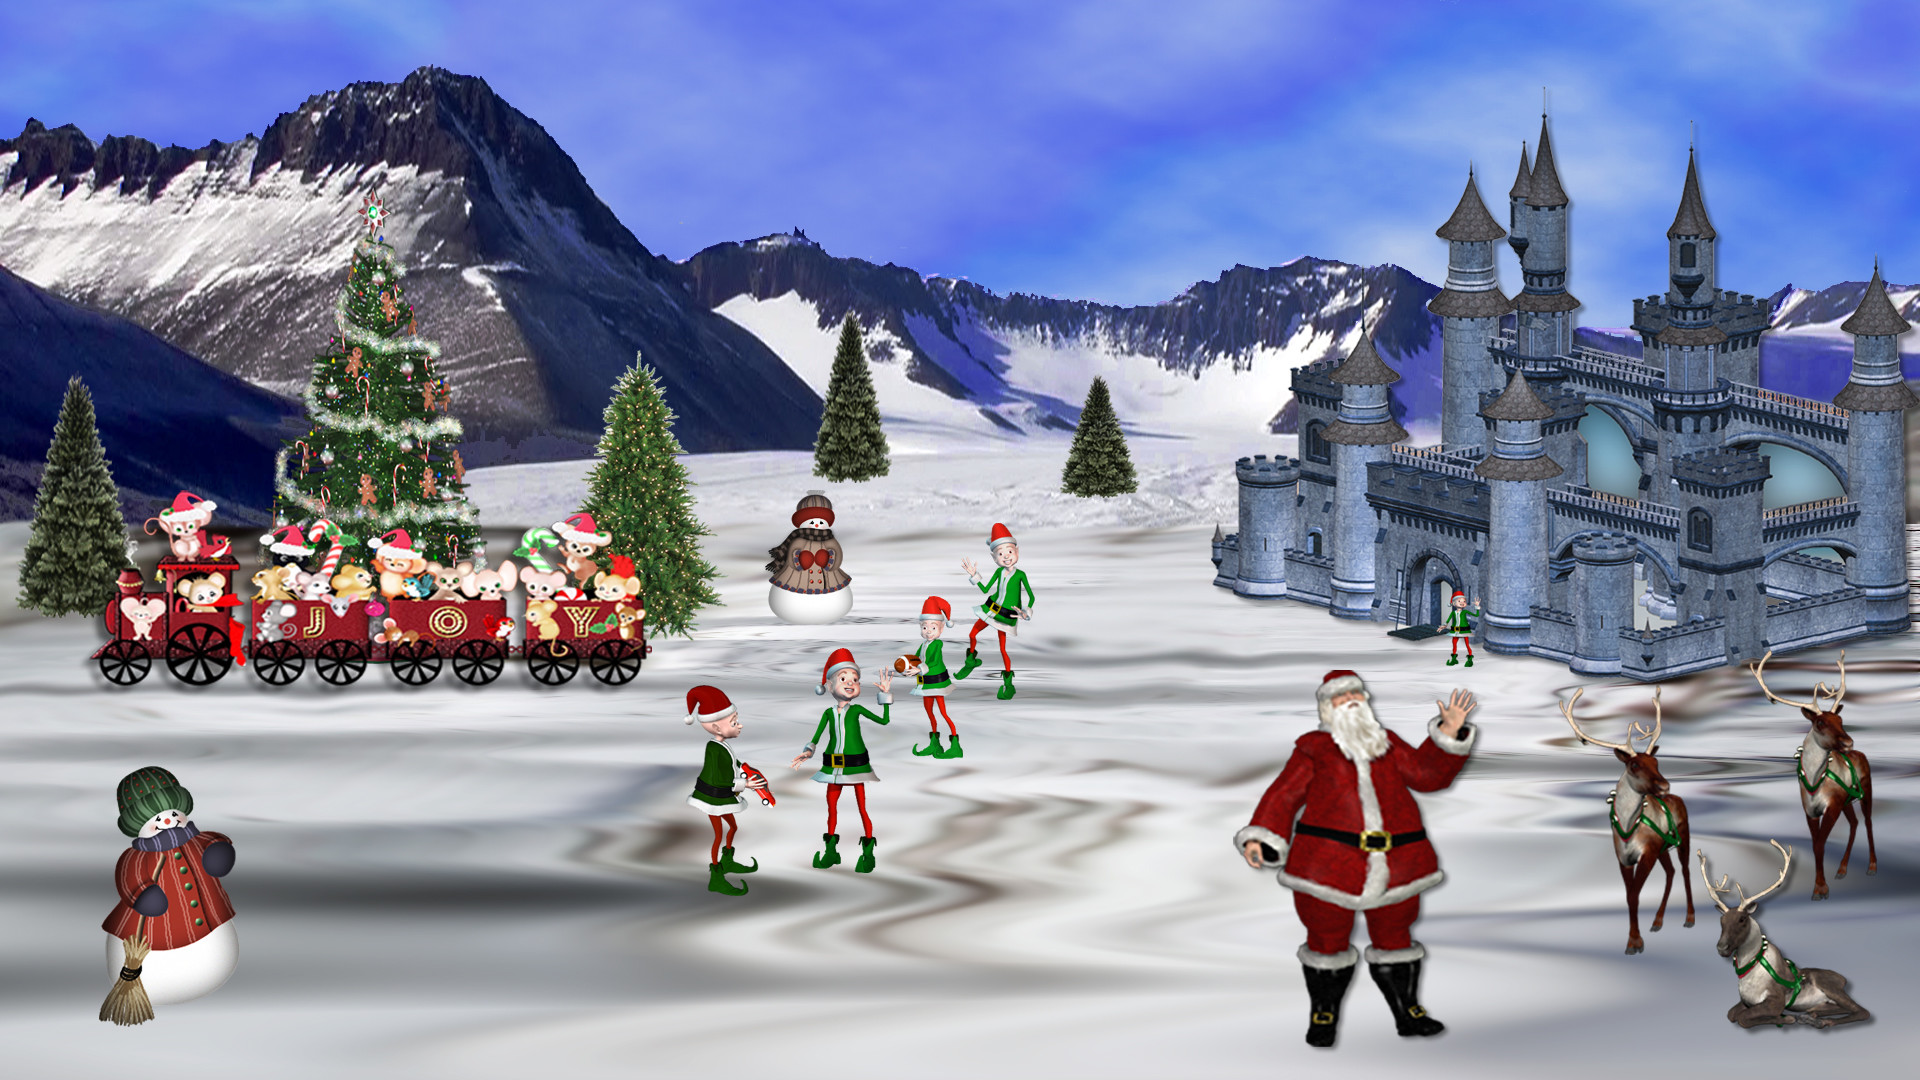 Live 3d Wallpaper Snowing North Pole Wallpapers 183 ①